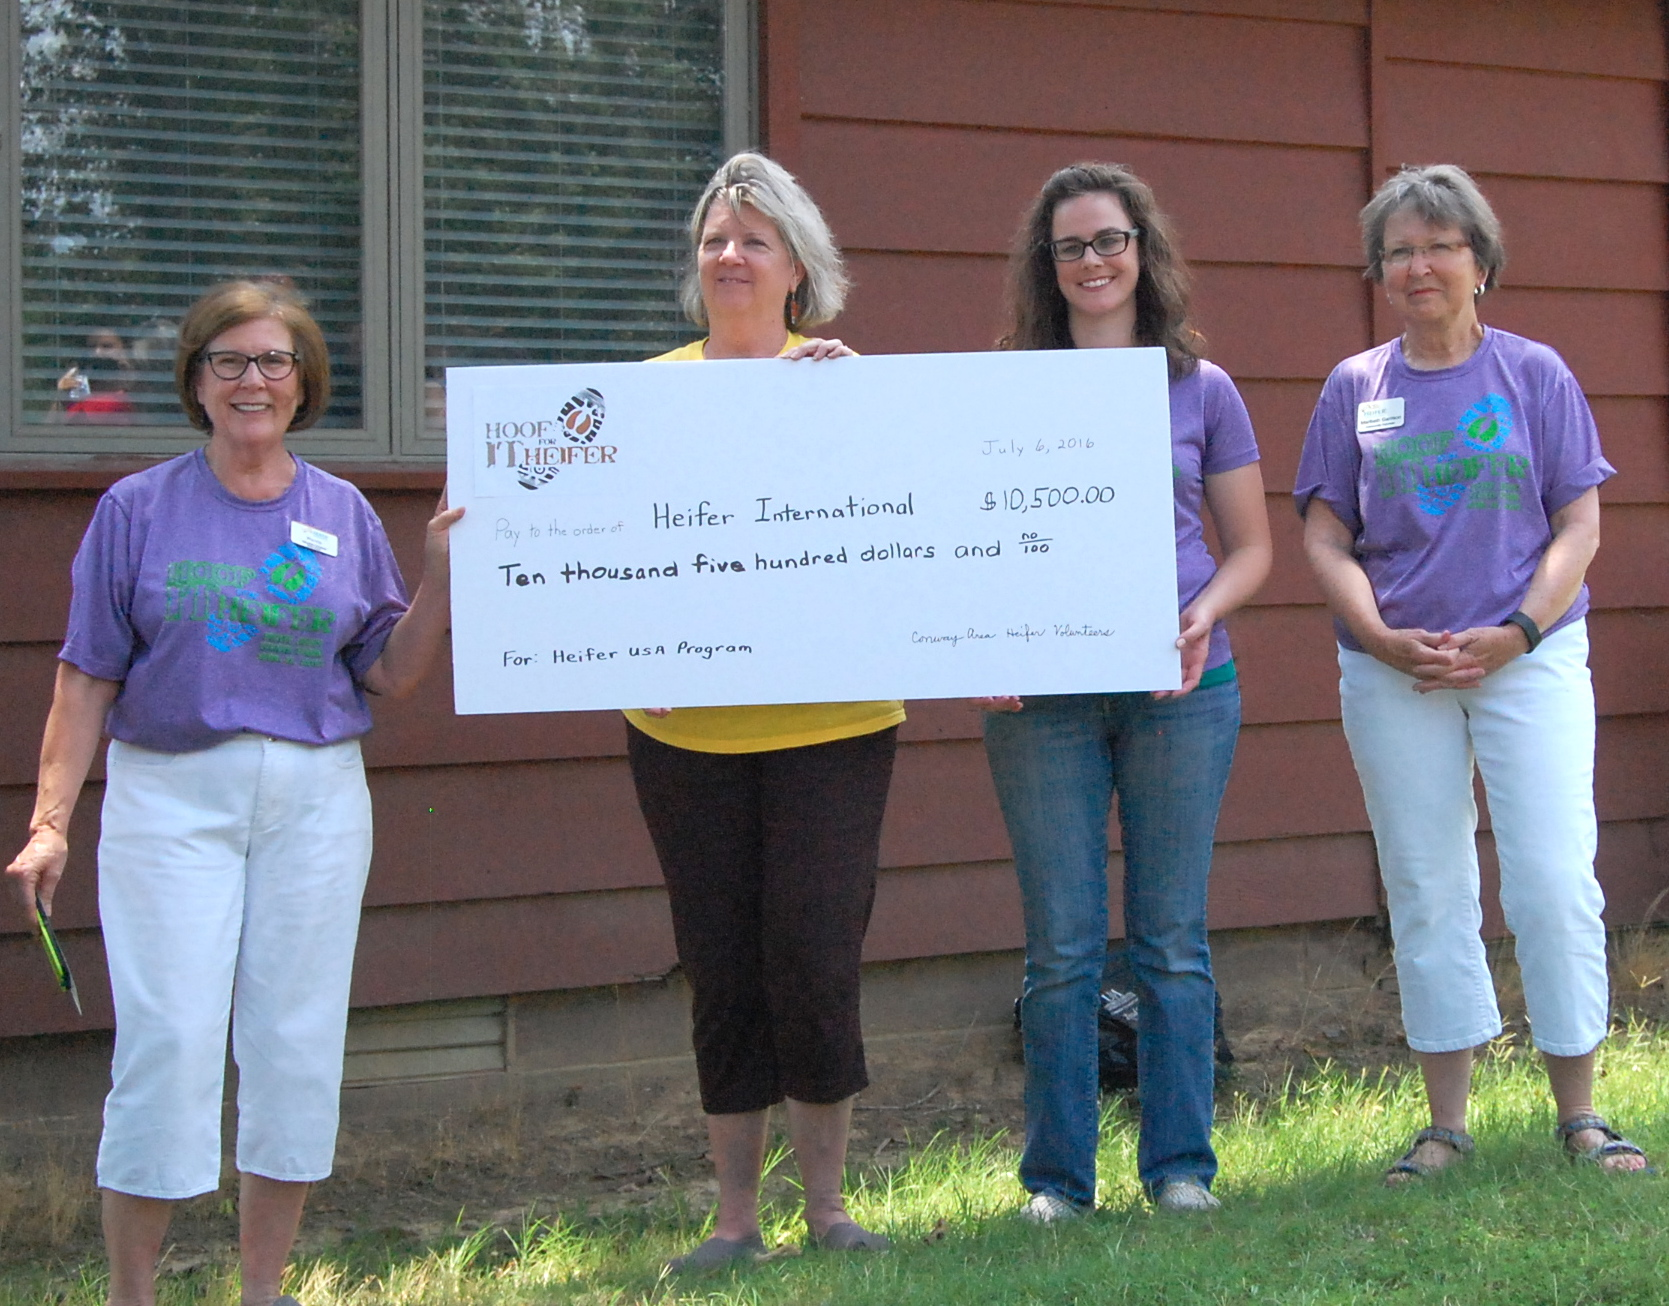 We presented a check to Heifer USA for more than $10,000, the proceeds from the 2016 Hoof it for Heifer Trail Run!